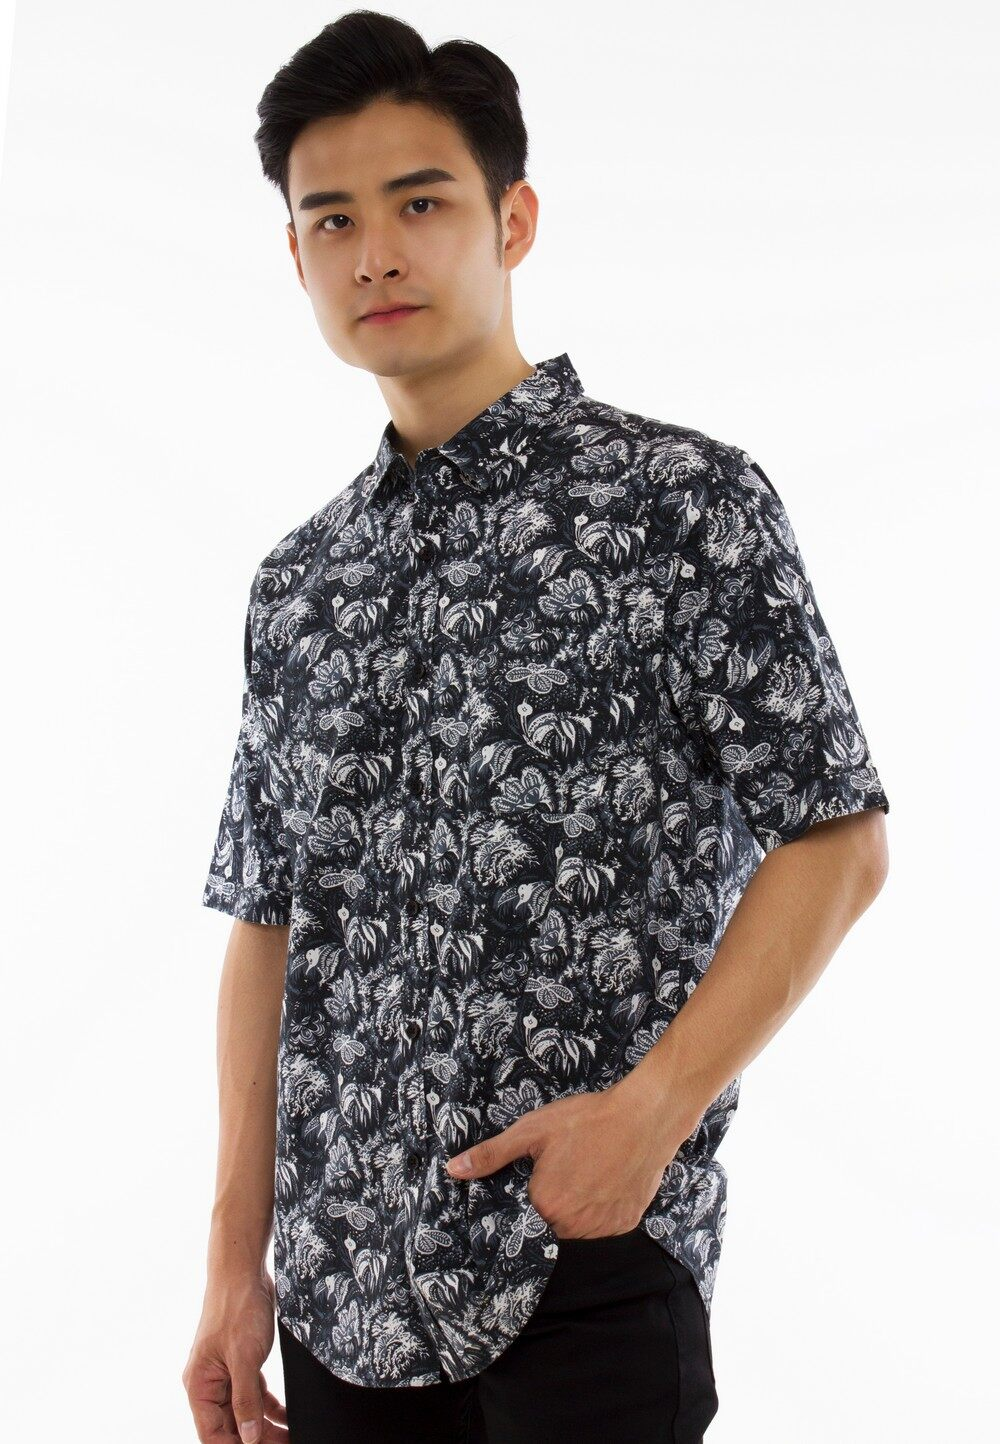 Exhaust Short Sleeve Shirt With Printing